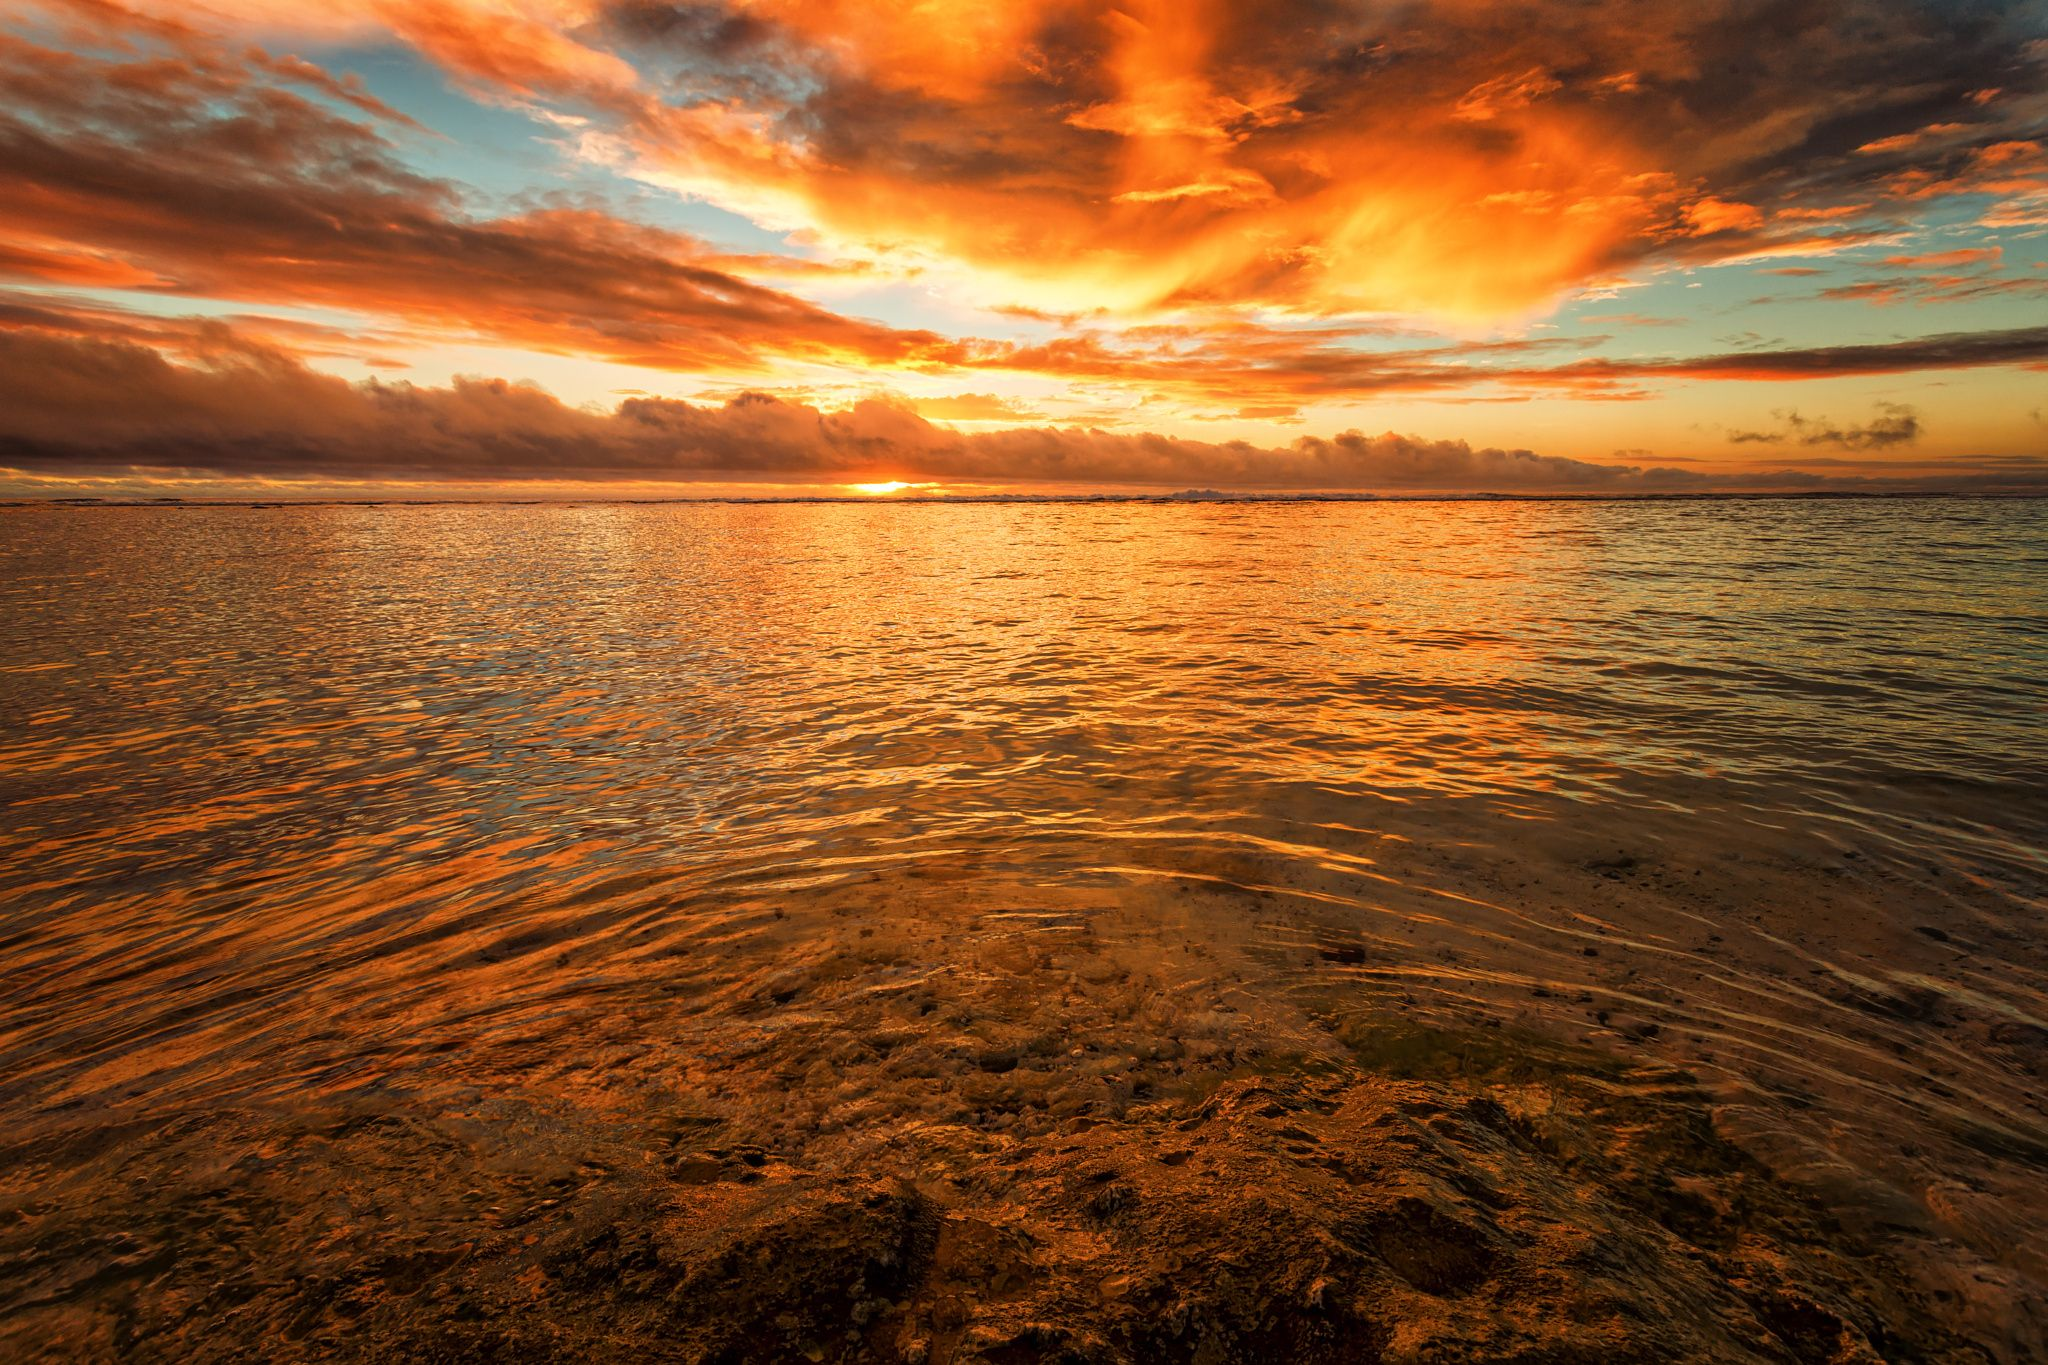 Fire in the Sky, Rarotonga by Stewart Baird on 500px